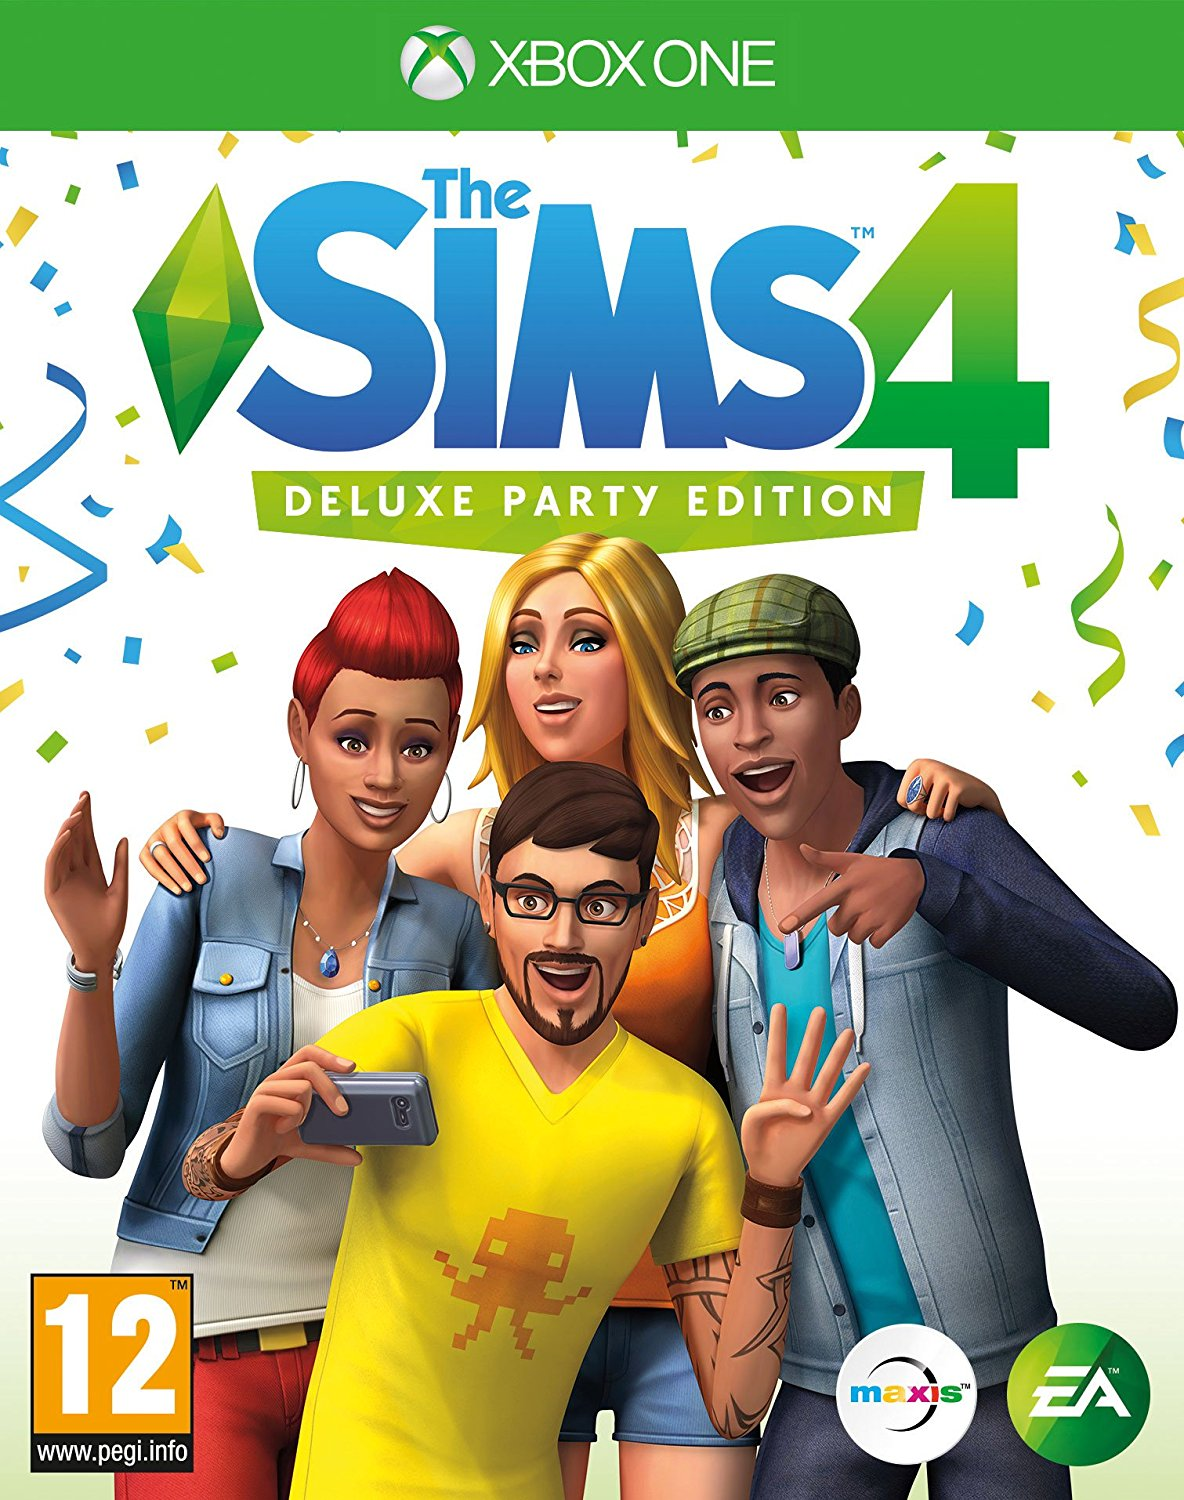 The Sims 4 Deluxe Party Edition Xbox One New 690001630827 Ebay